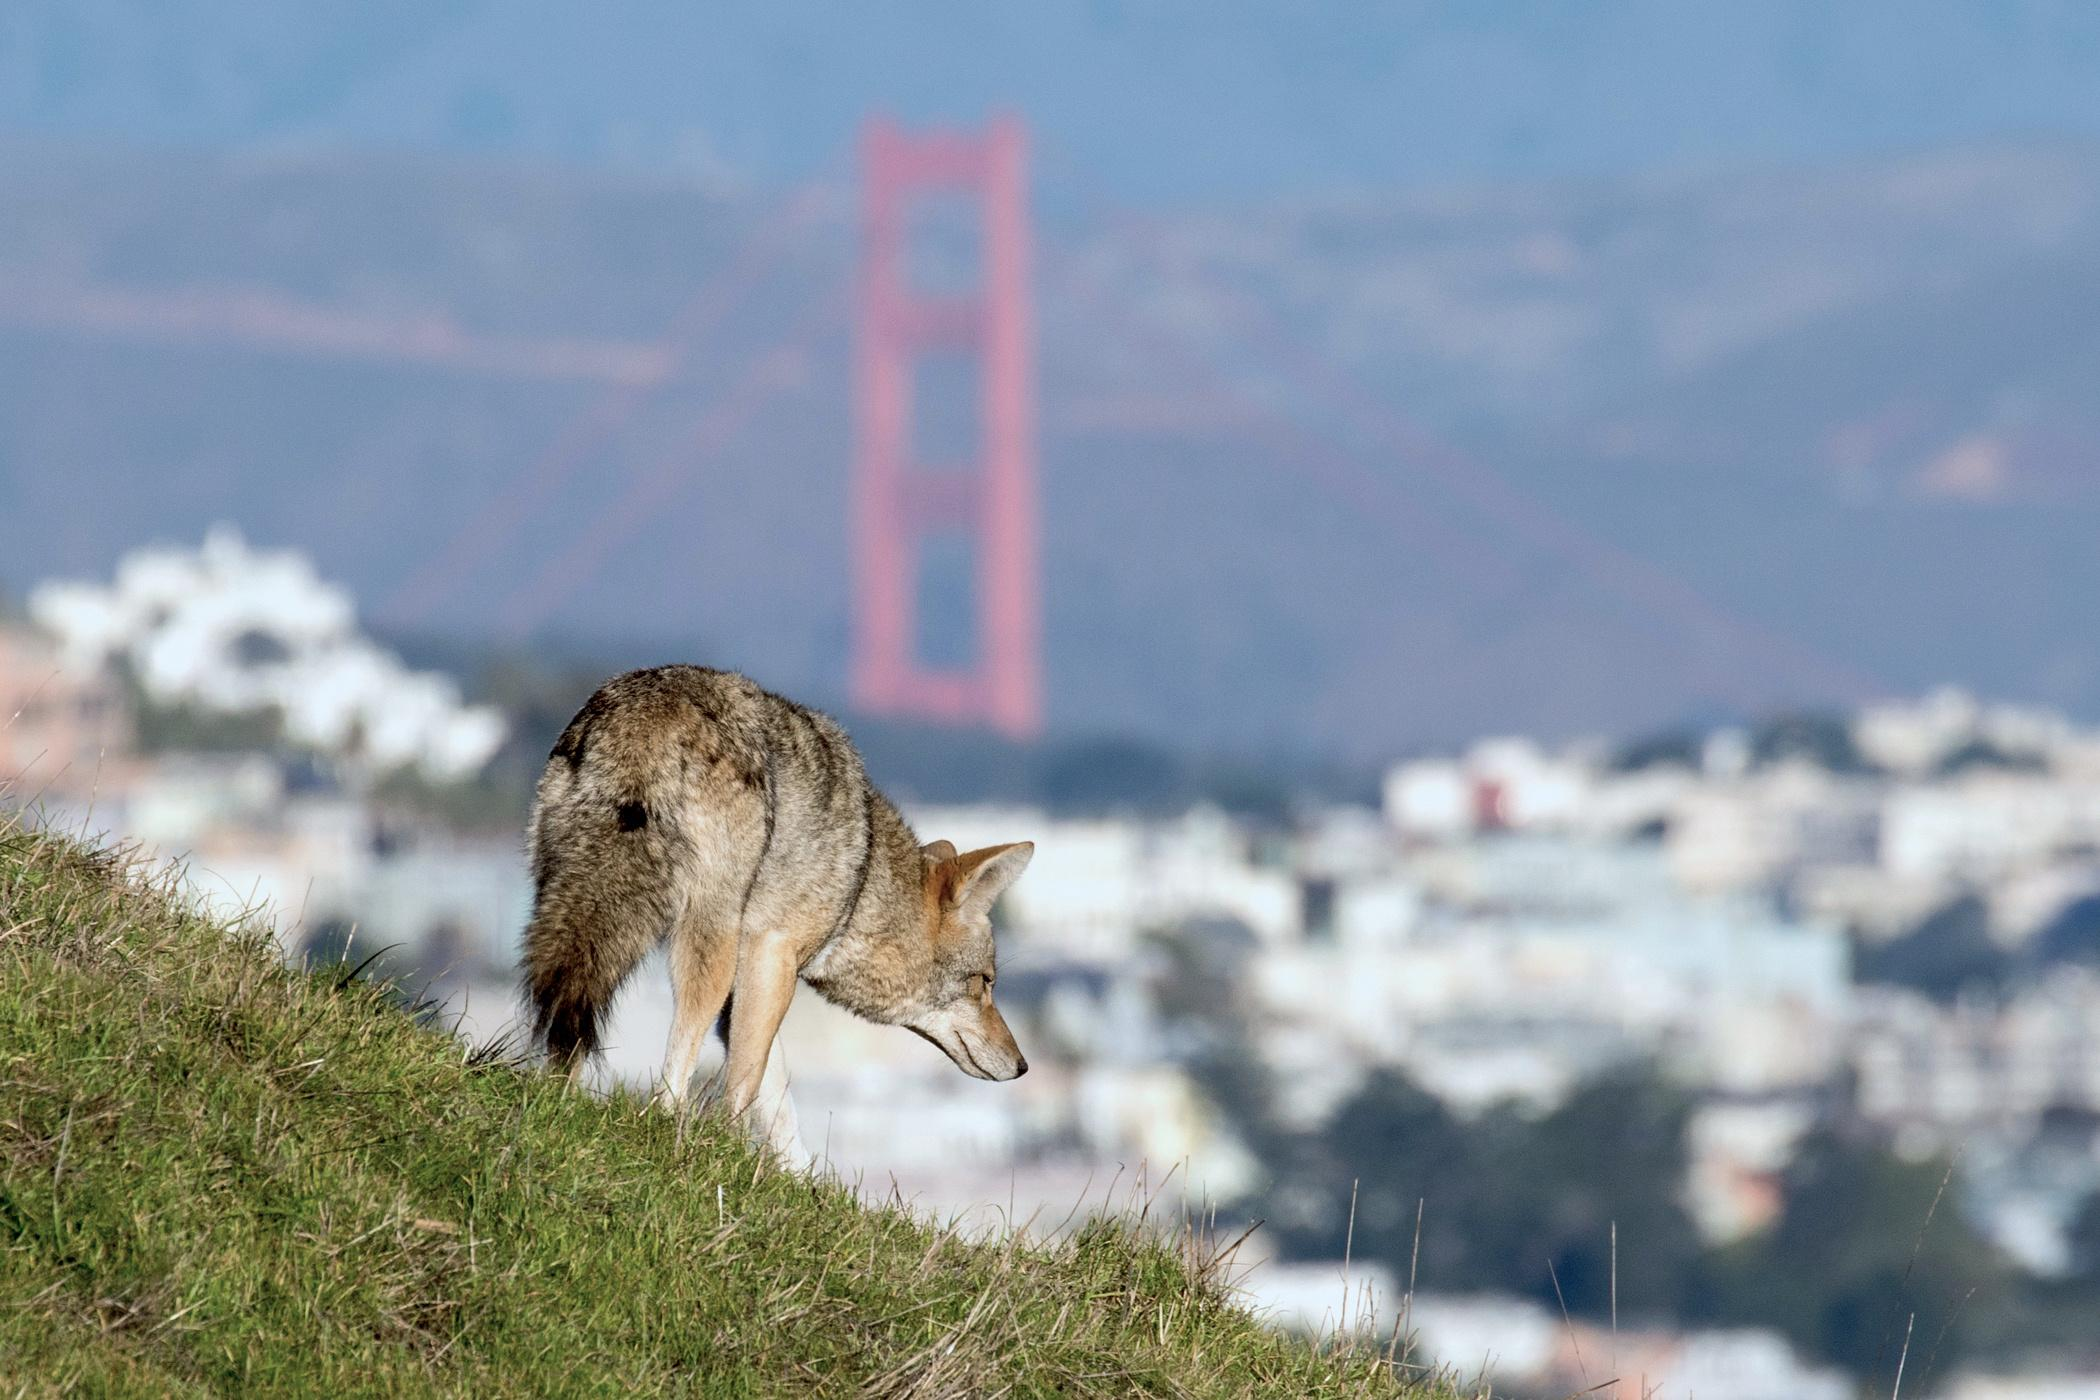 'They're no different from us': the woman who follows urban coyotes